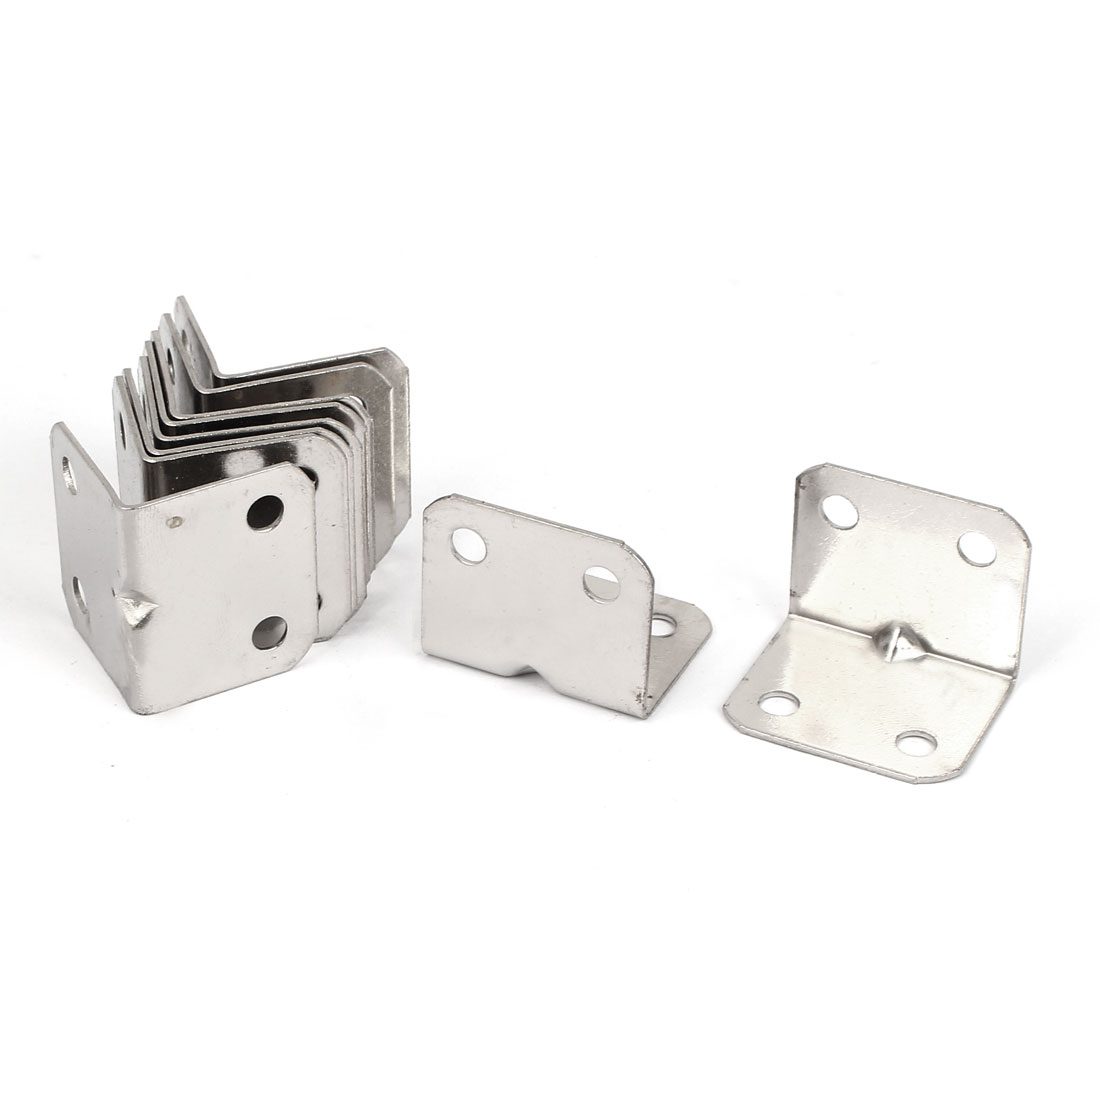 10pcs 25x25x31mm Stainless Steel Corner Brace Right Angle Bracket 1mm Thickness